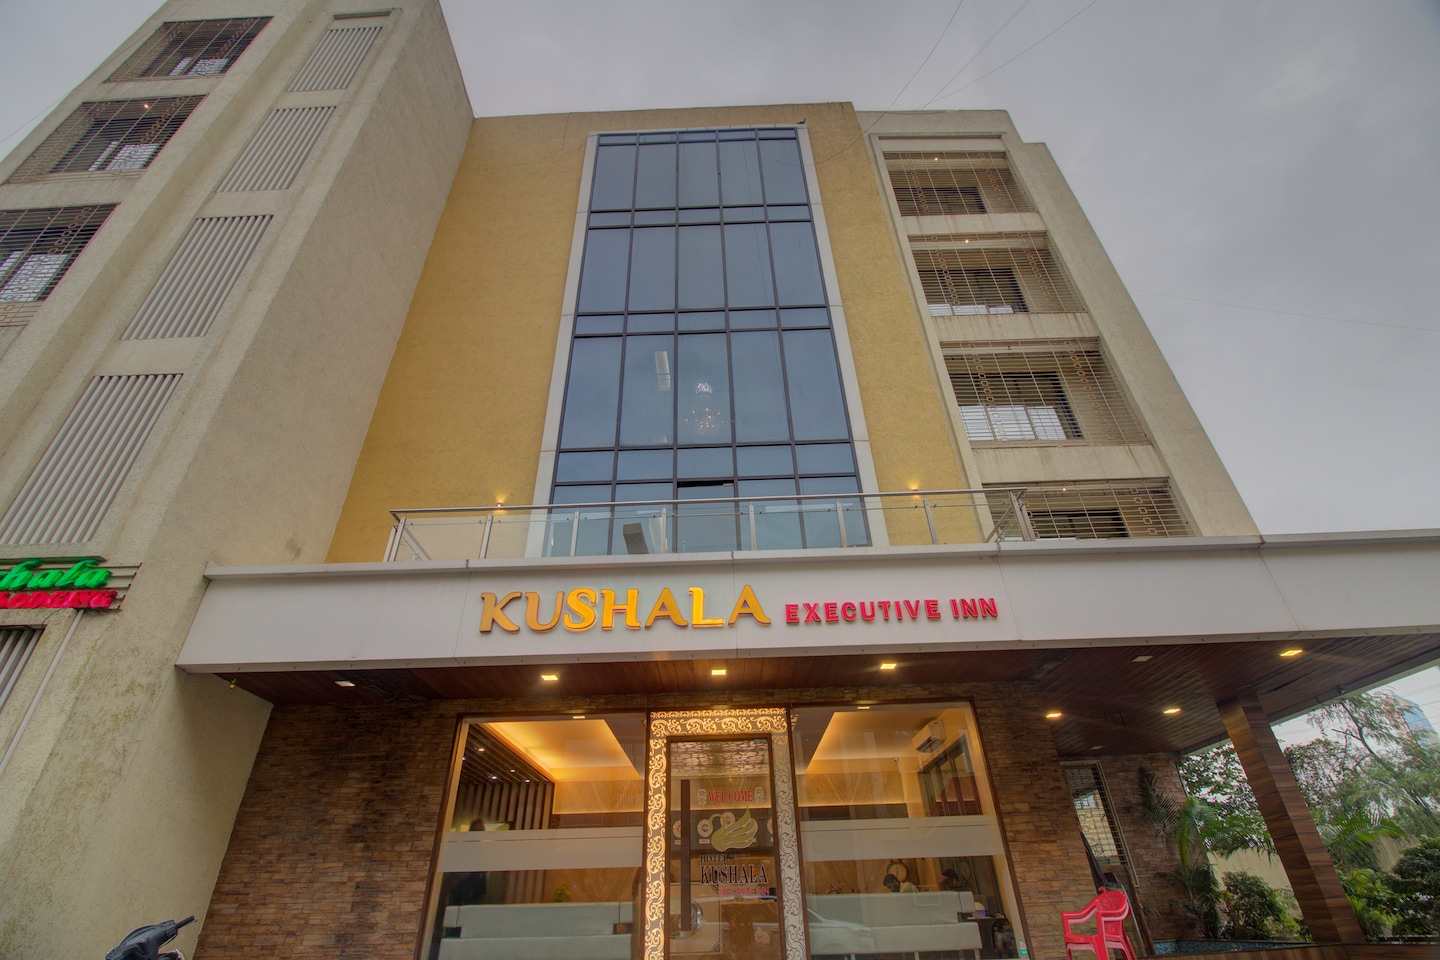 Capital O 7158 Hotel Kushala Executive Inn -1